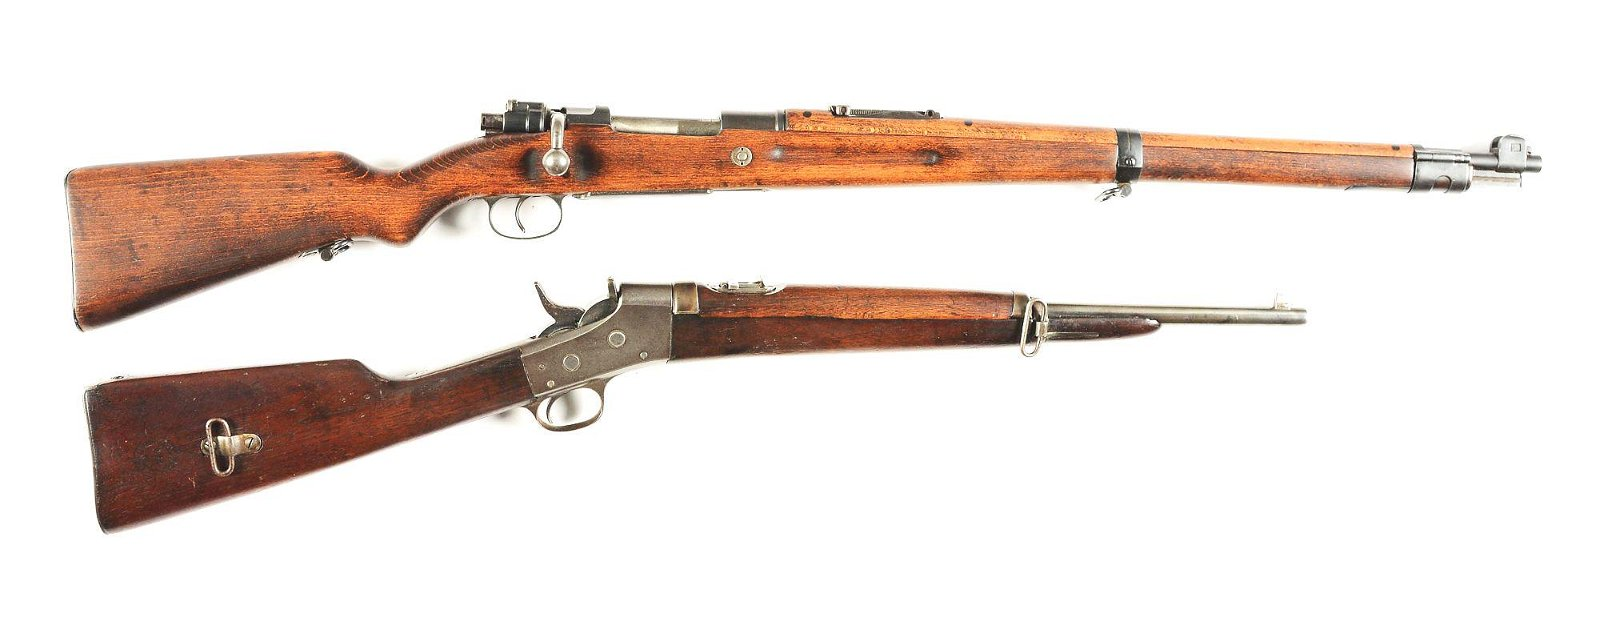 (C) LOT OF 2: KAR98A MAUSER BOLT ACTION RIFLE AND